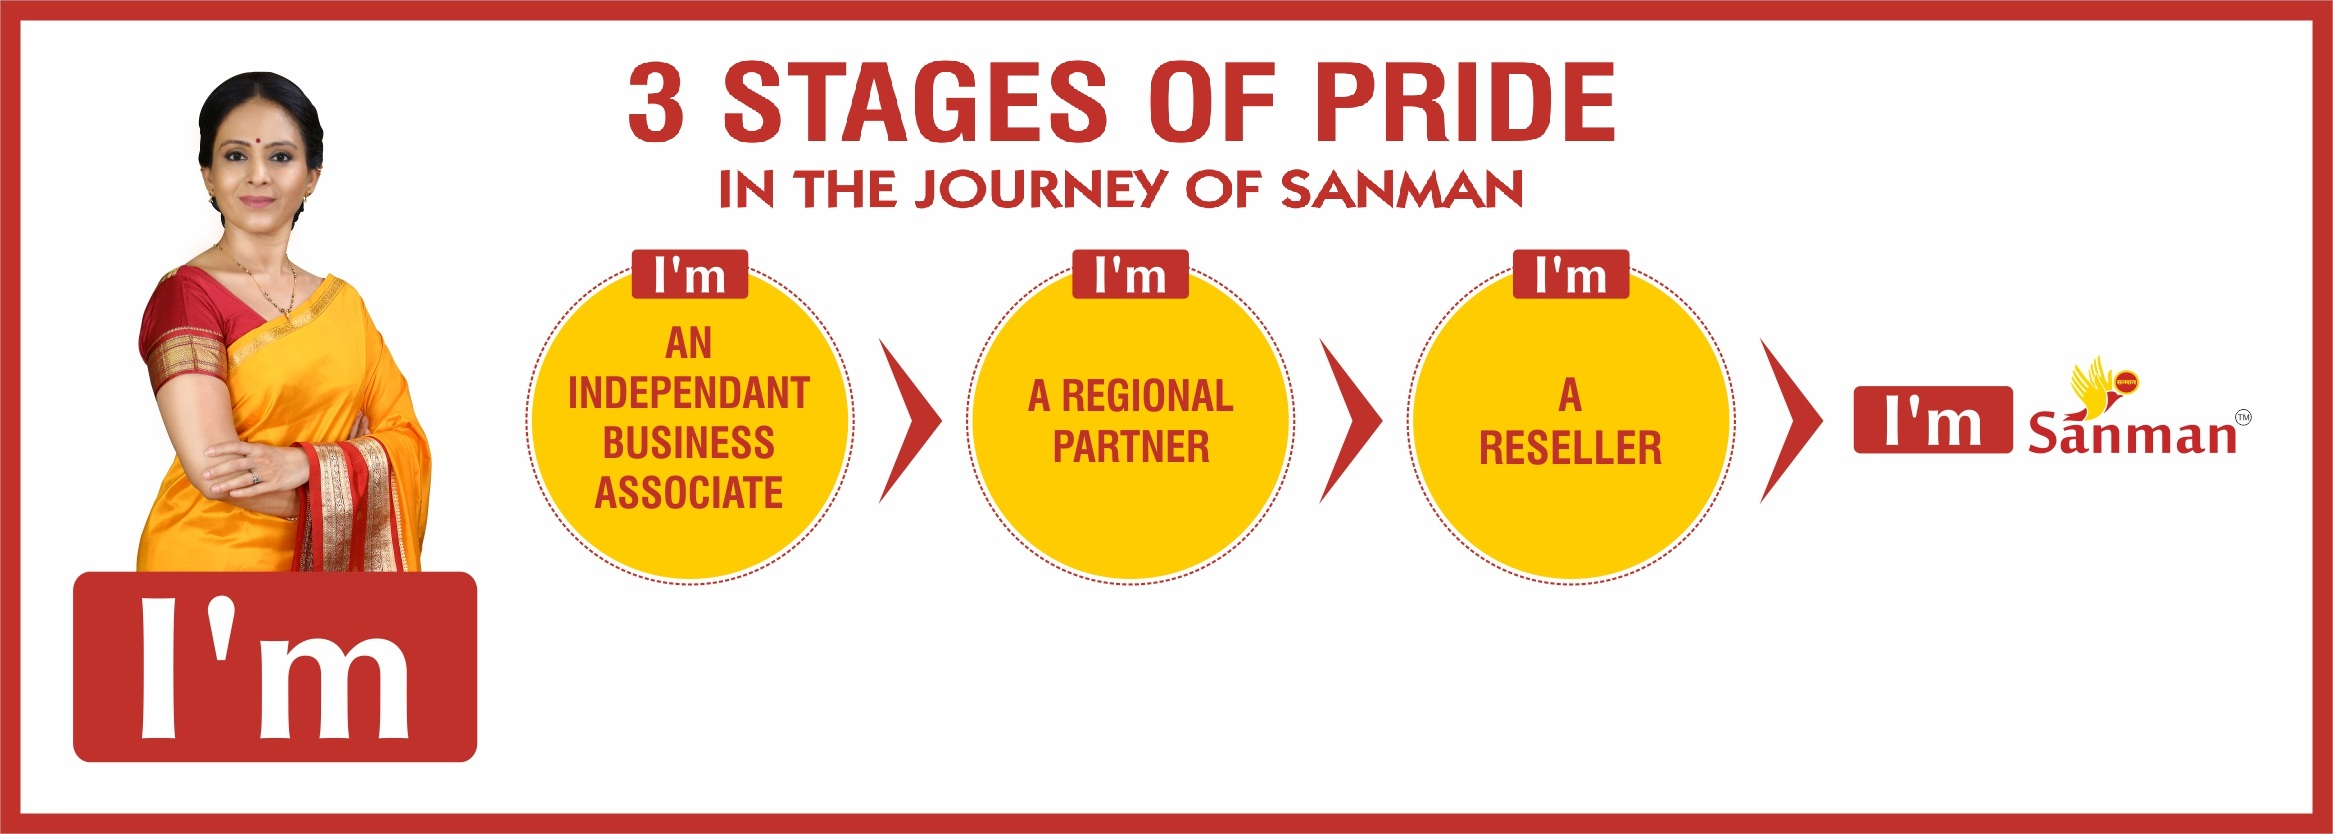 Sanman- 3 Stages of Pride.jpg